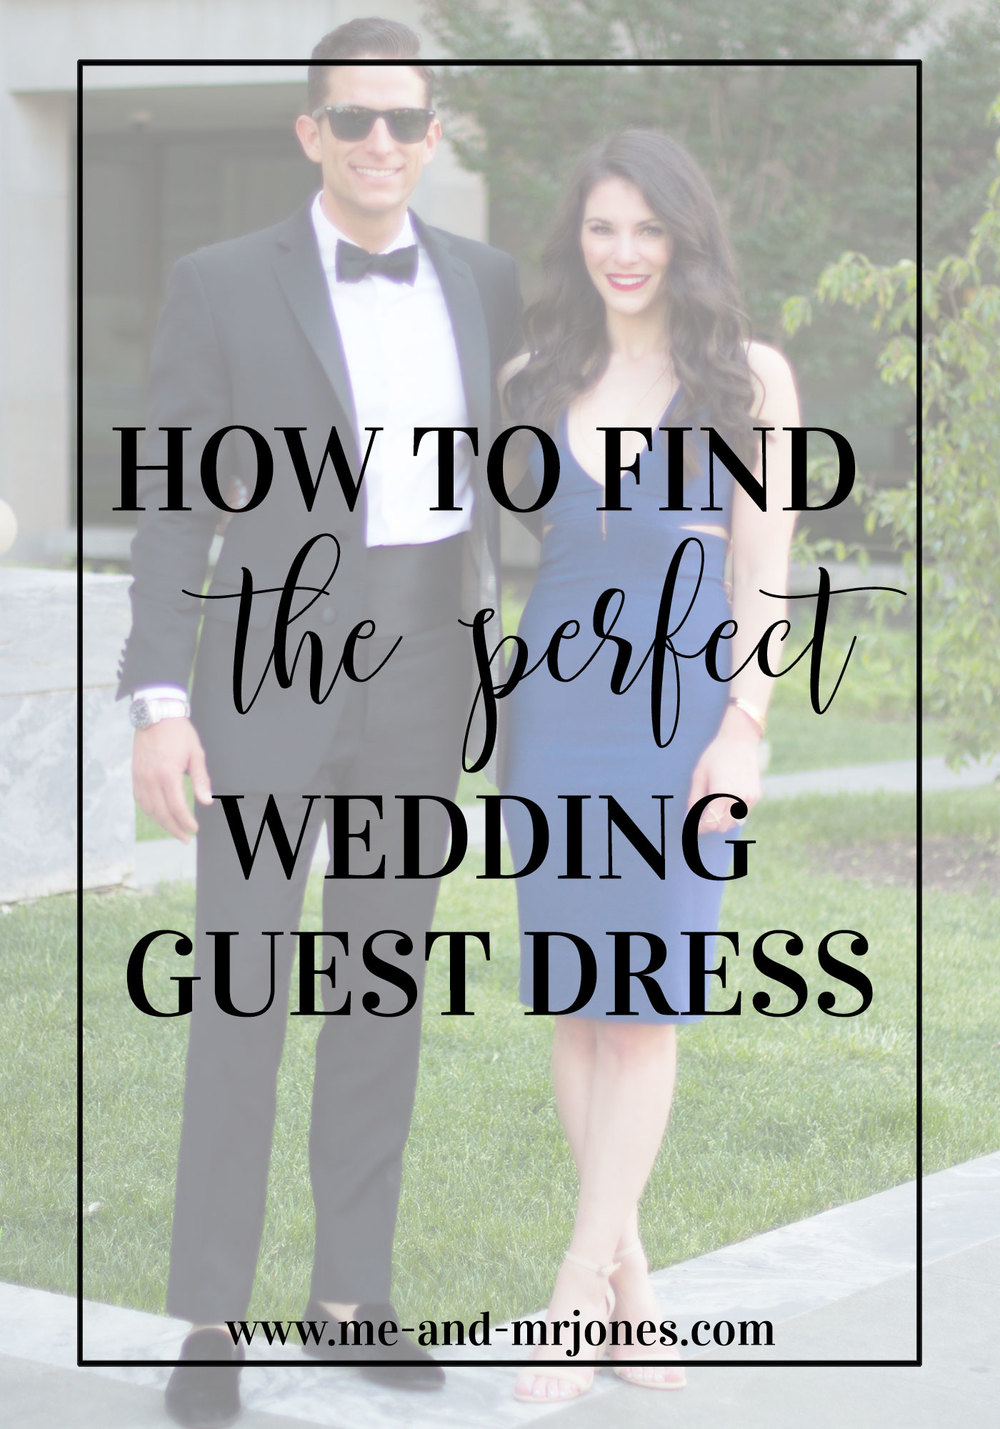 What to wear to a summer wedding, bodycon dress, black tie wedding attire, cute wedding guest dresses.